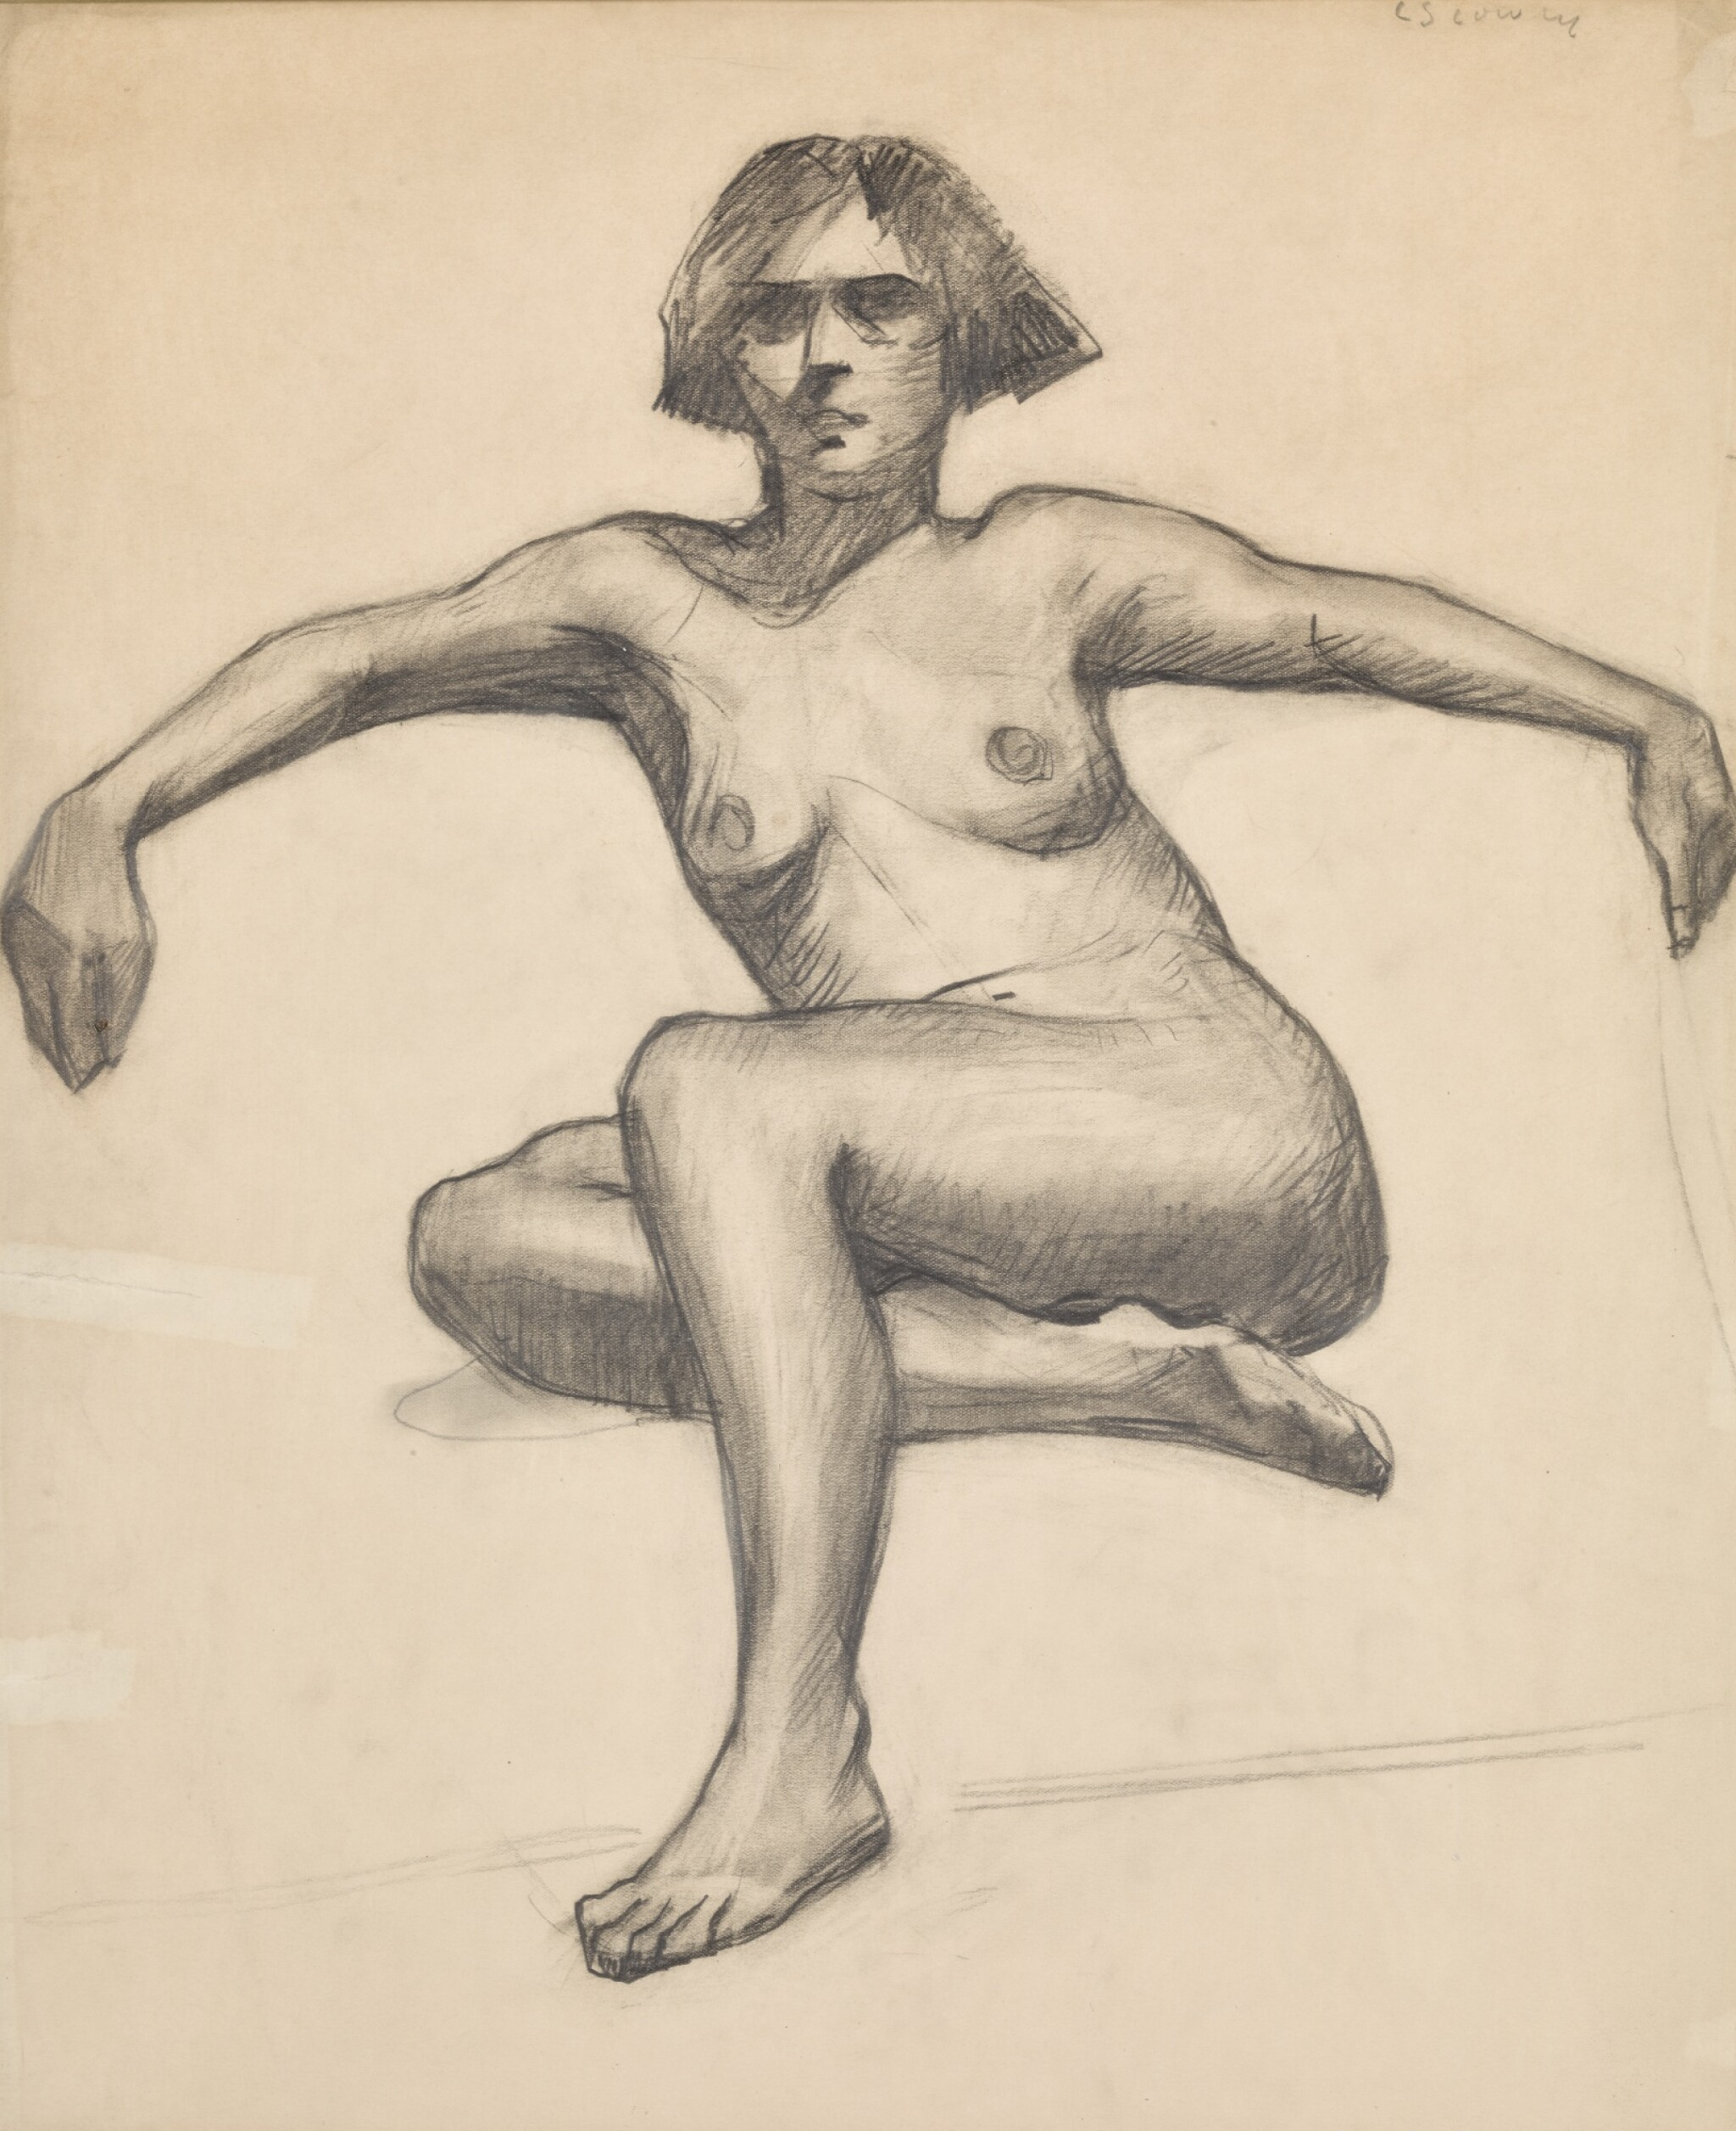 View 1 of Lot 172. LAURENCE STEPHEN LOWRY, R.A. | STUDY OF A NUDE.